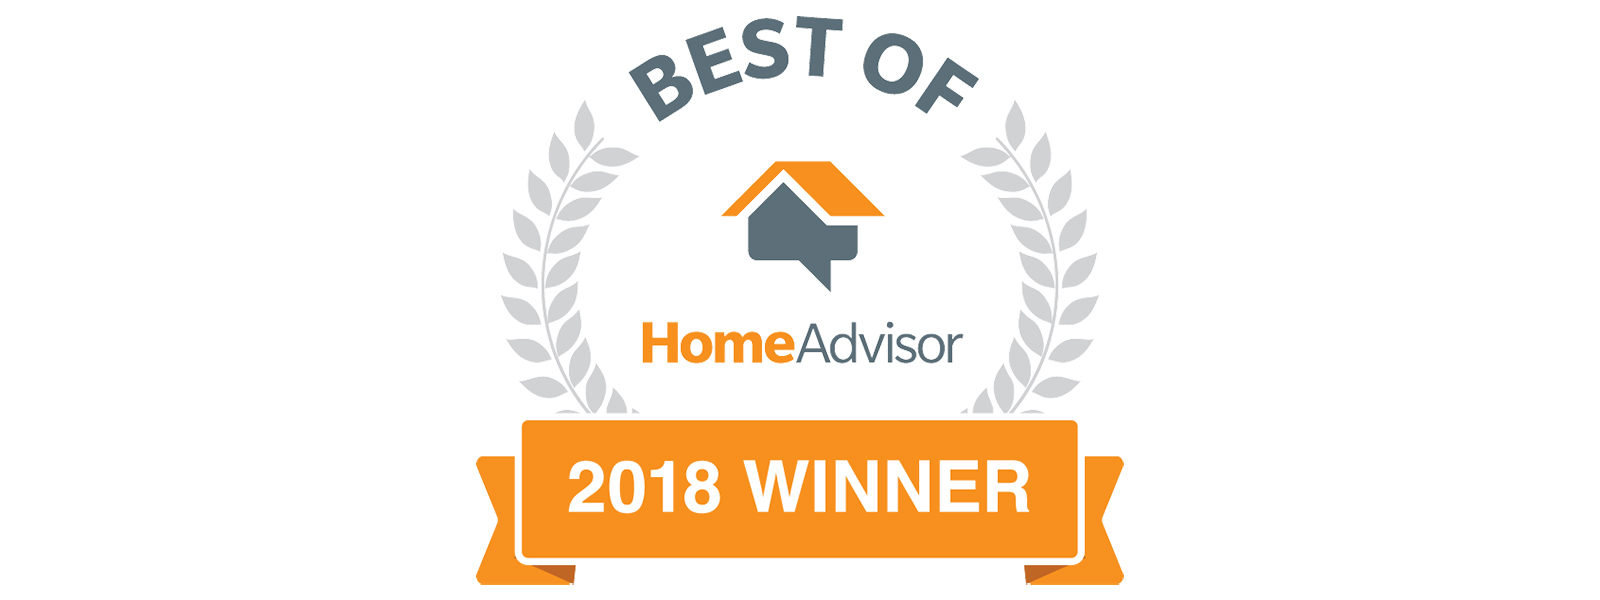 best roofer homeadvisor 2018